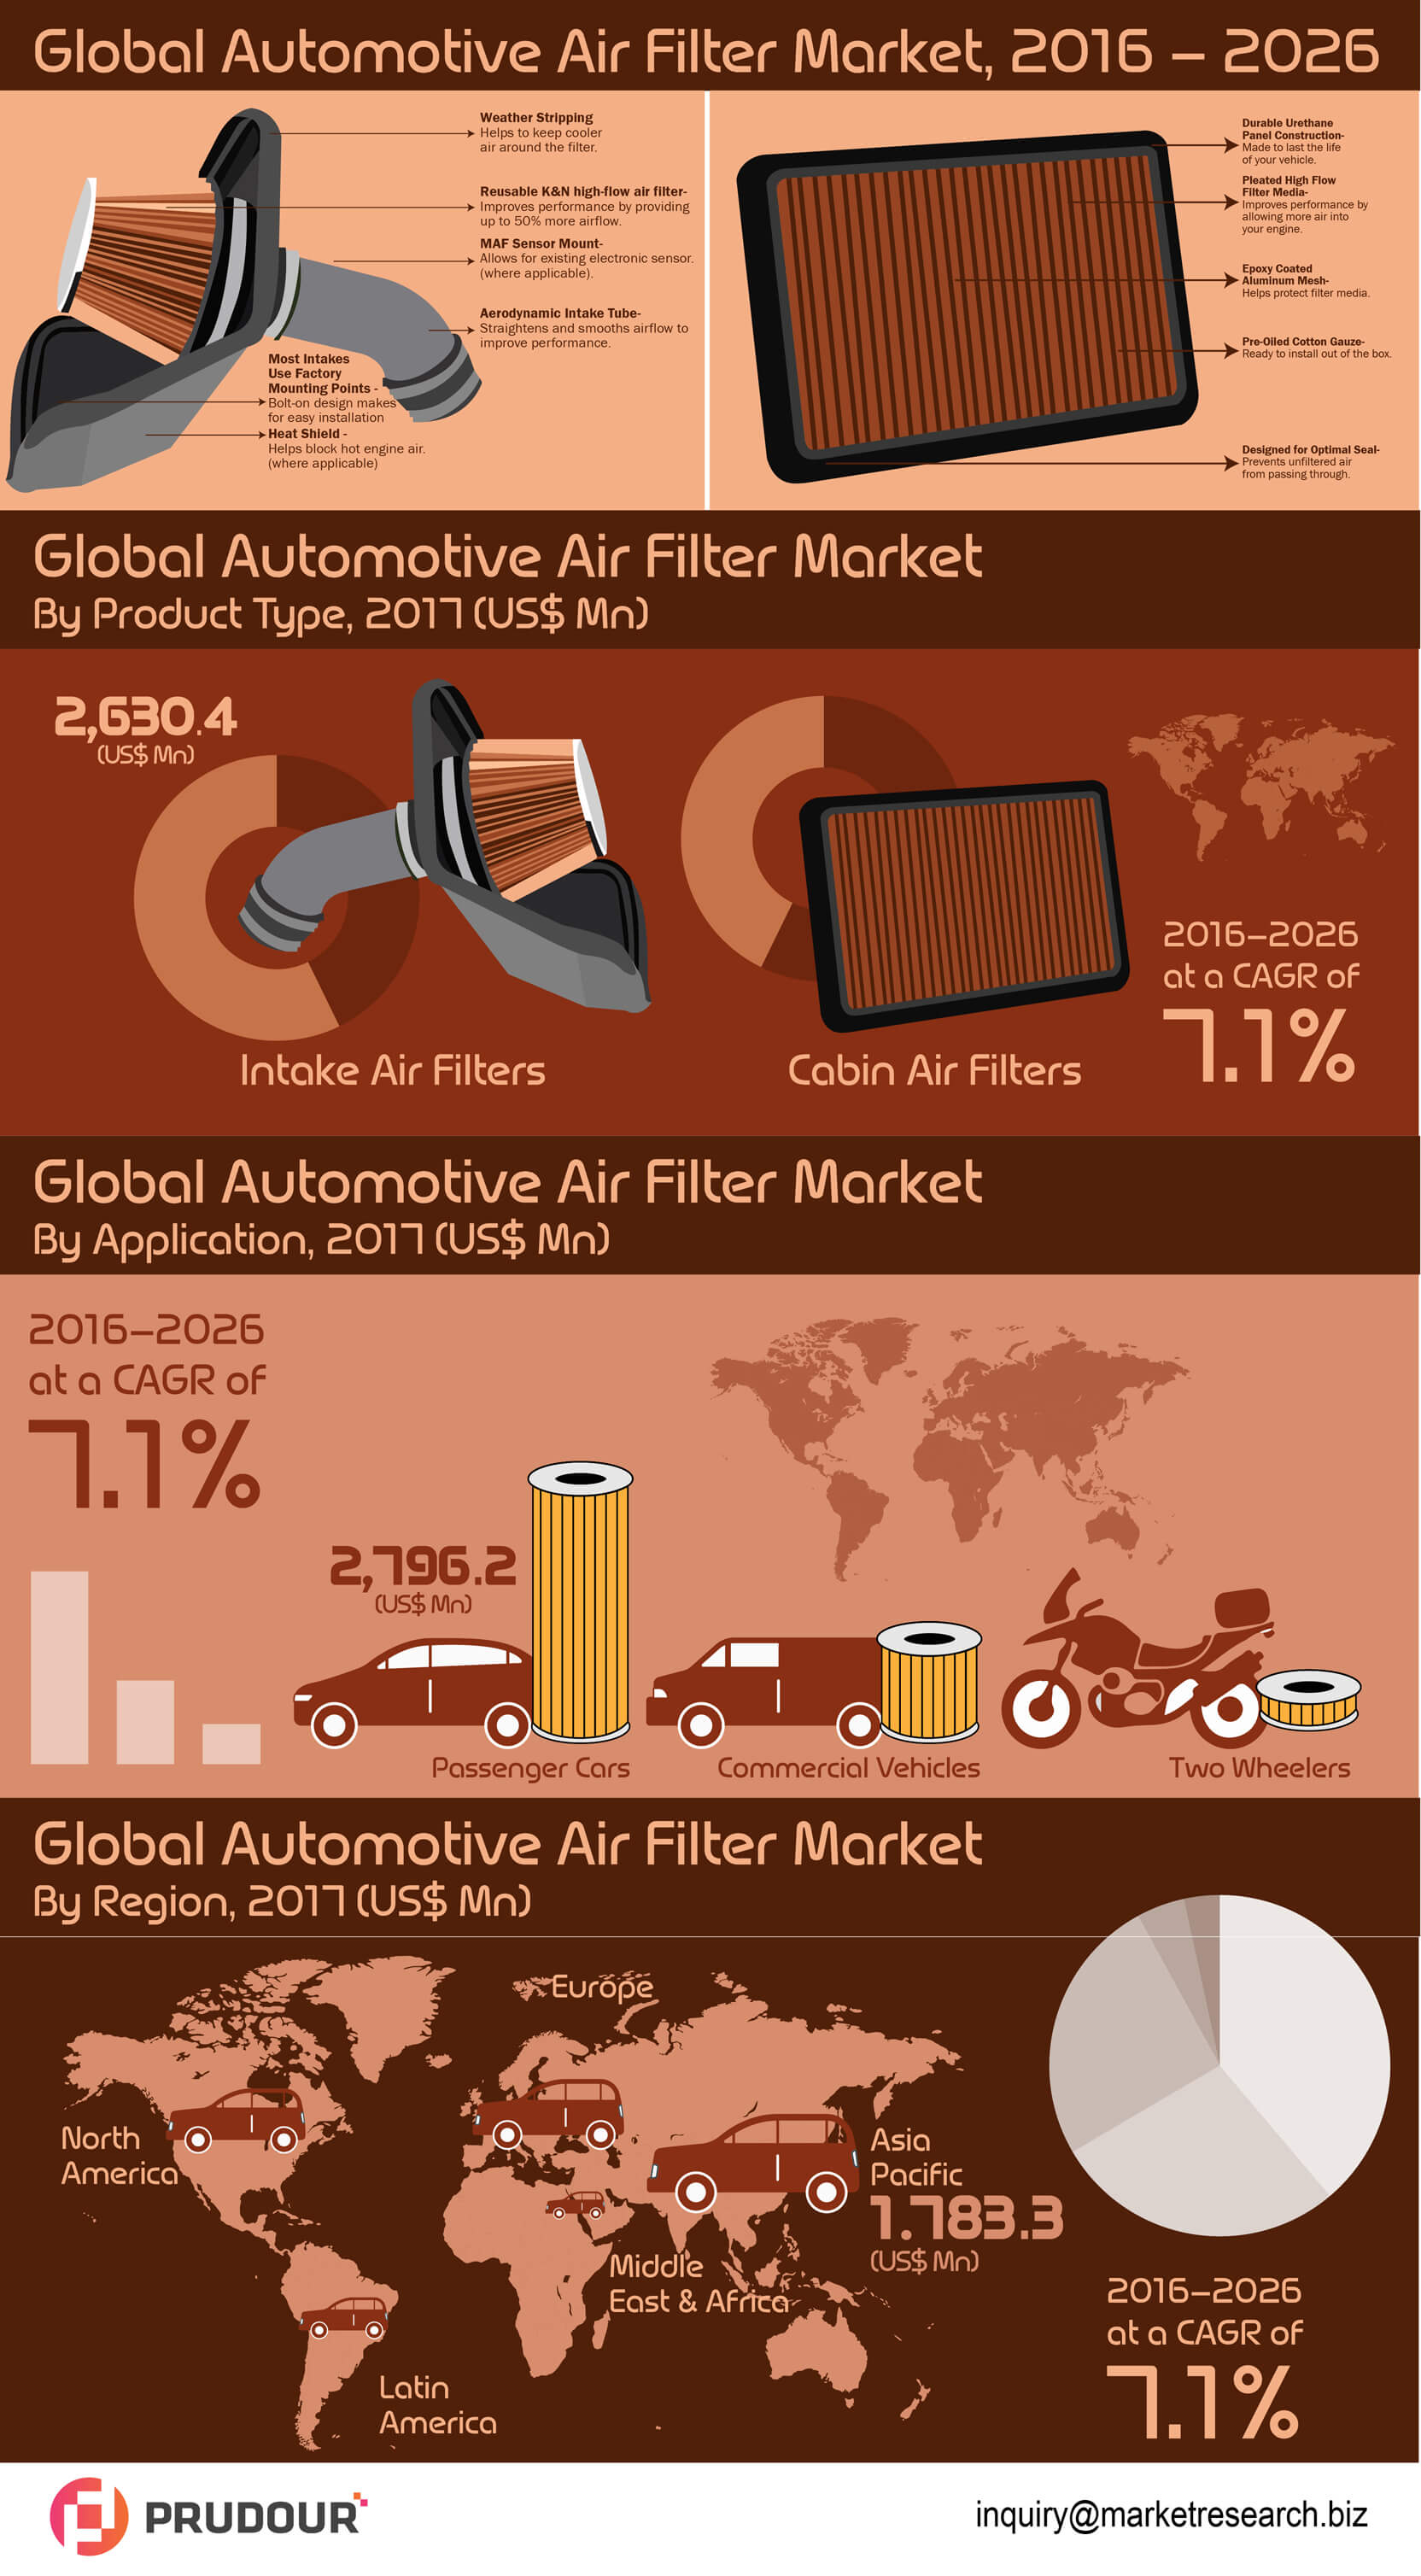 global-automotive-air-filter-market-infographic-plaza